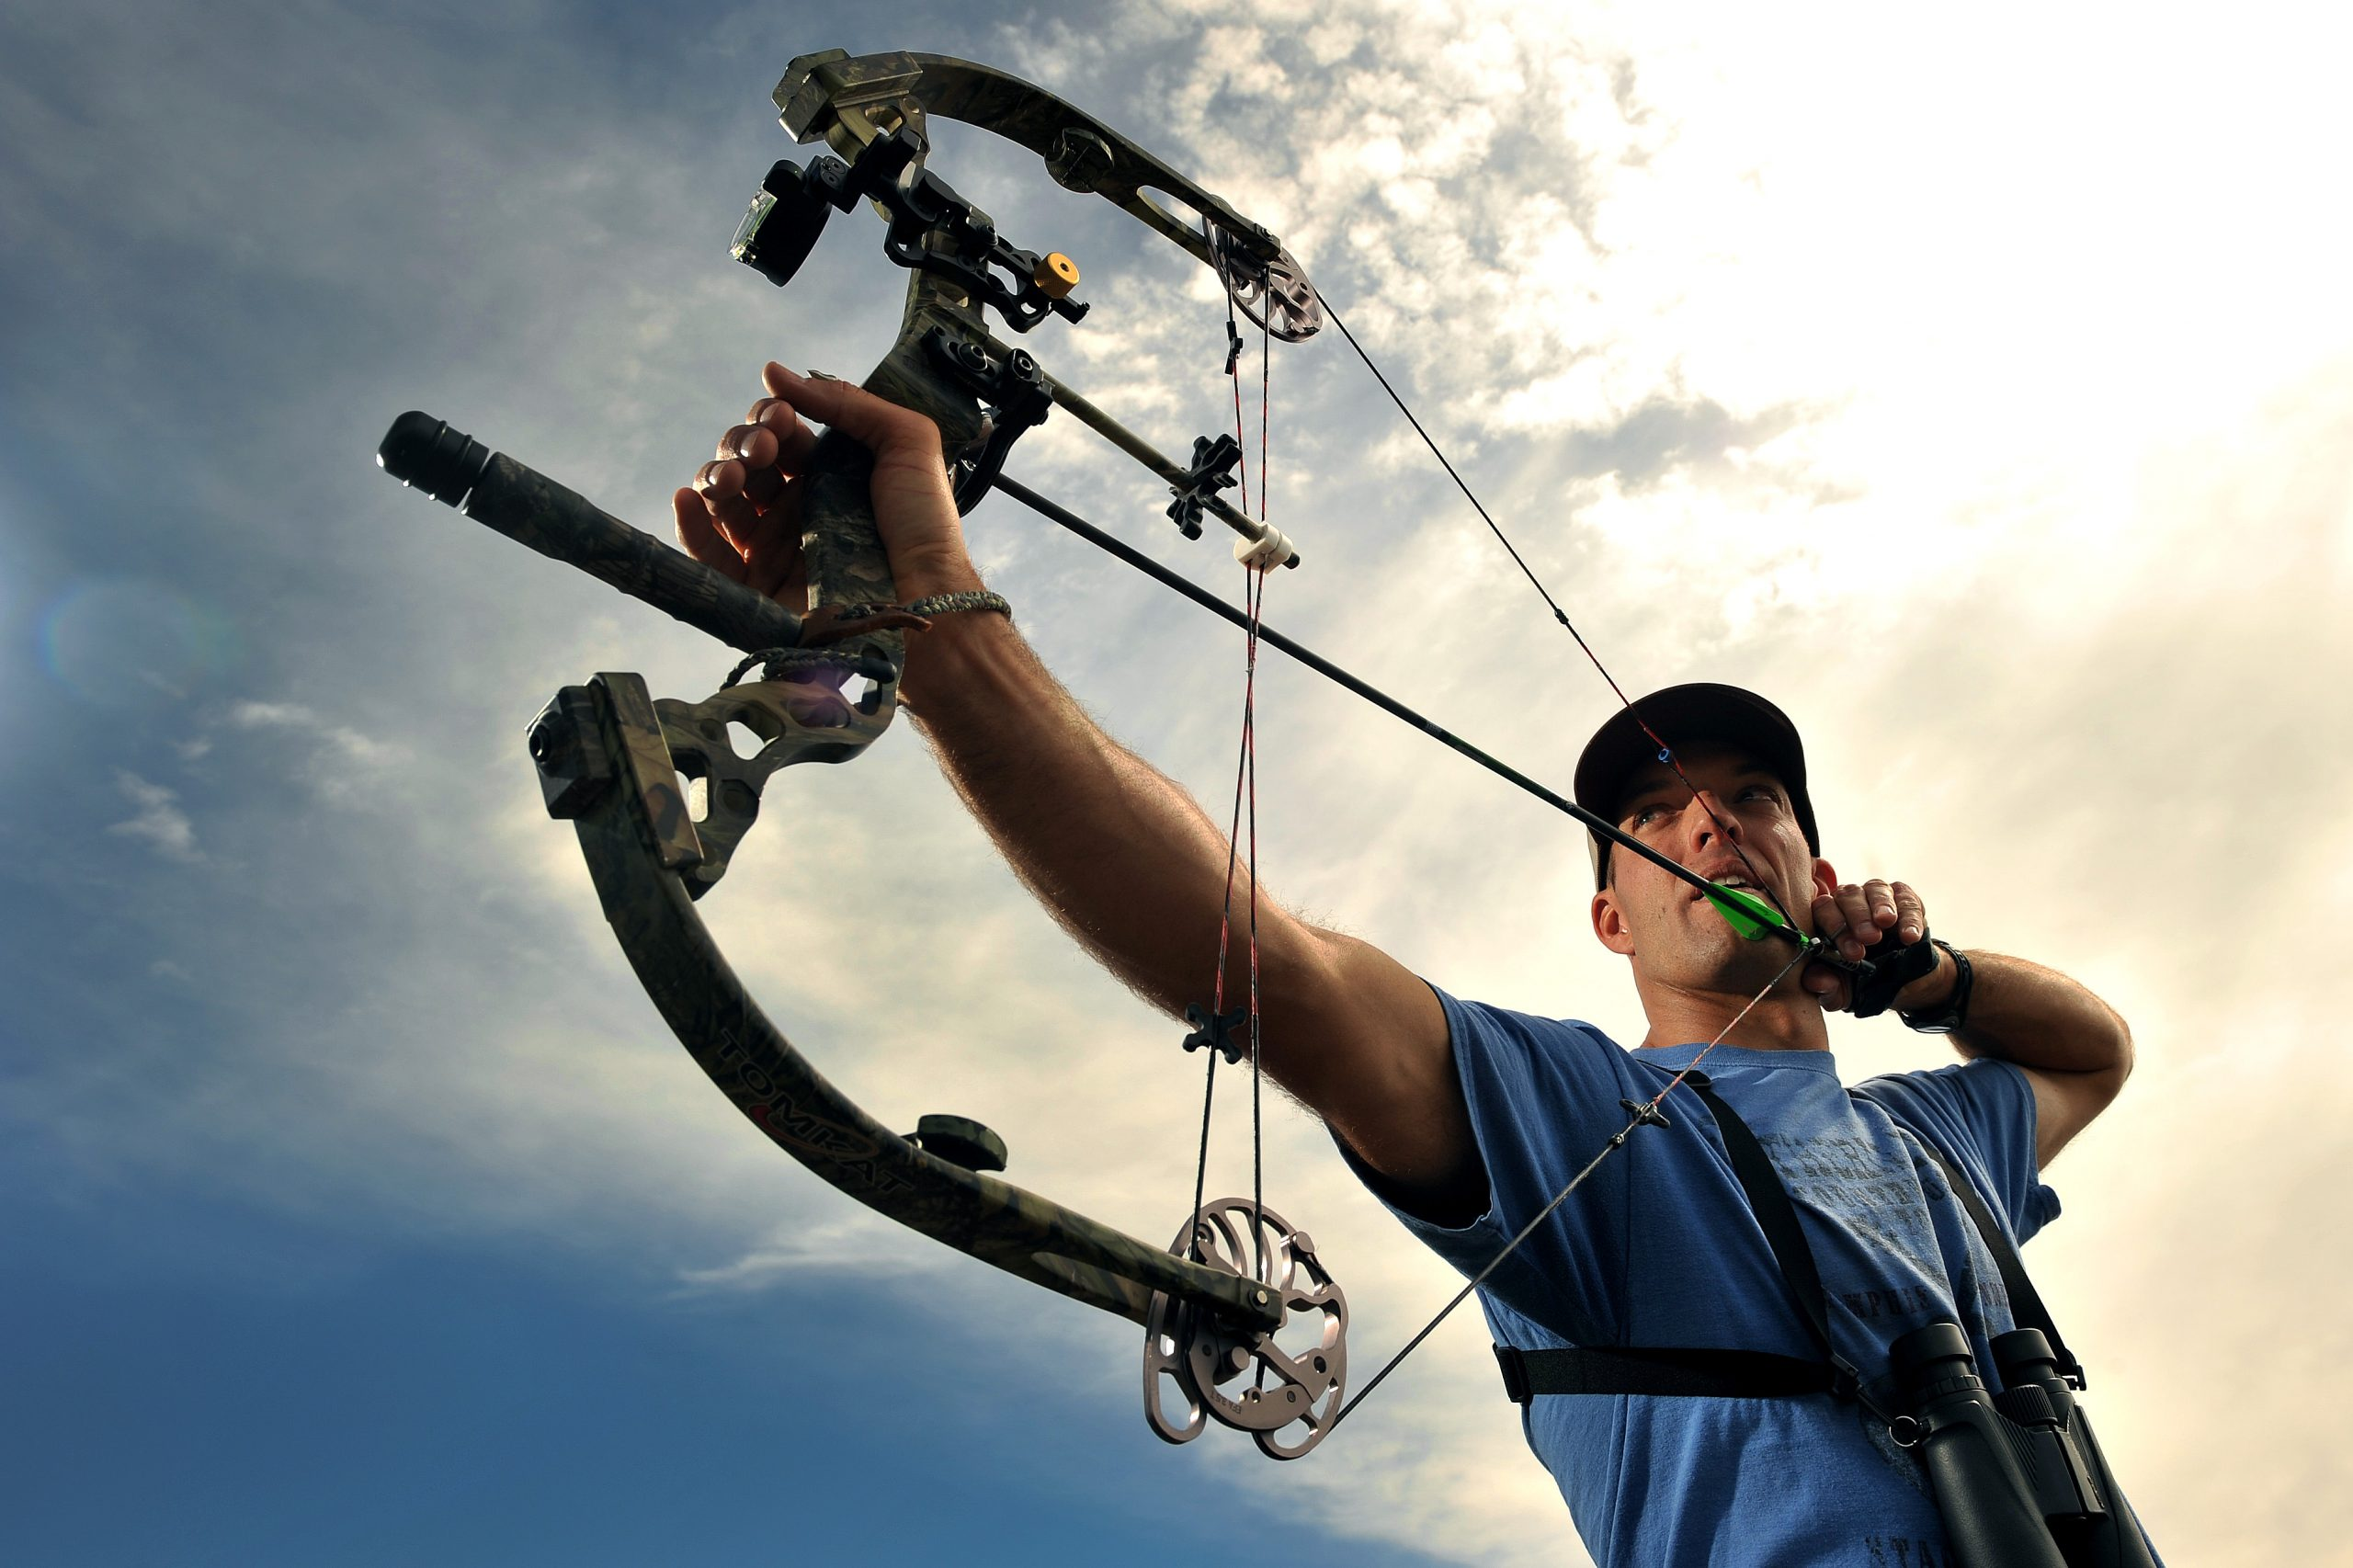 Archer used compound bow